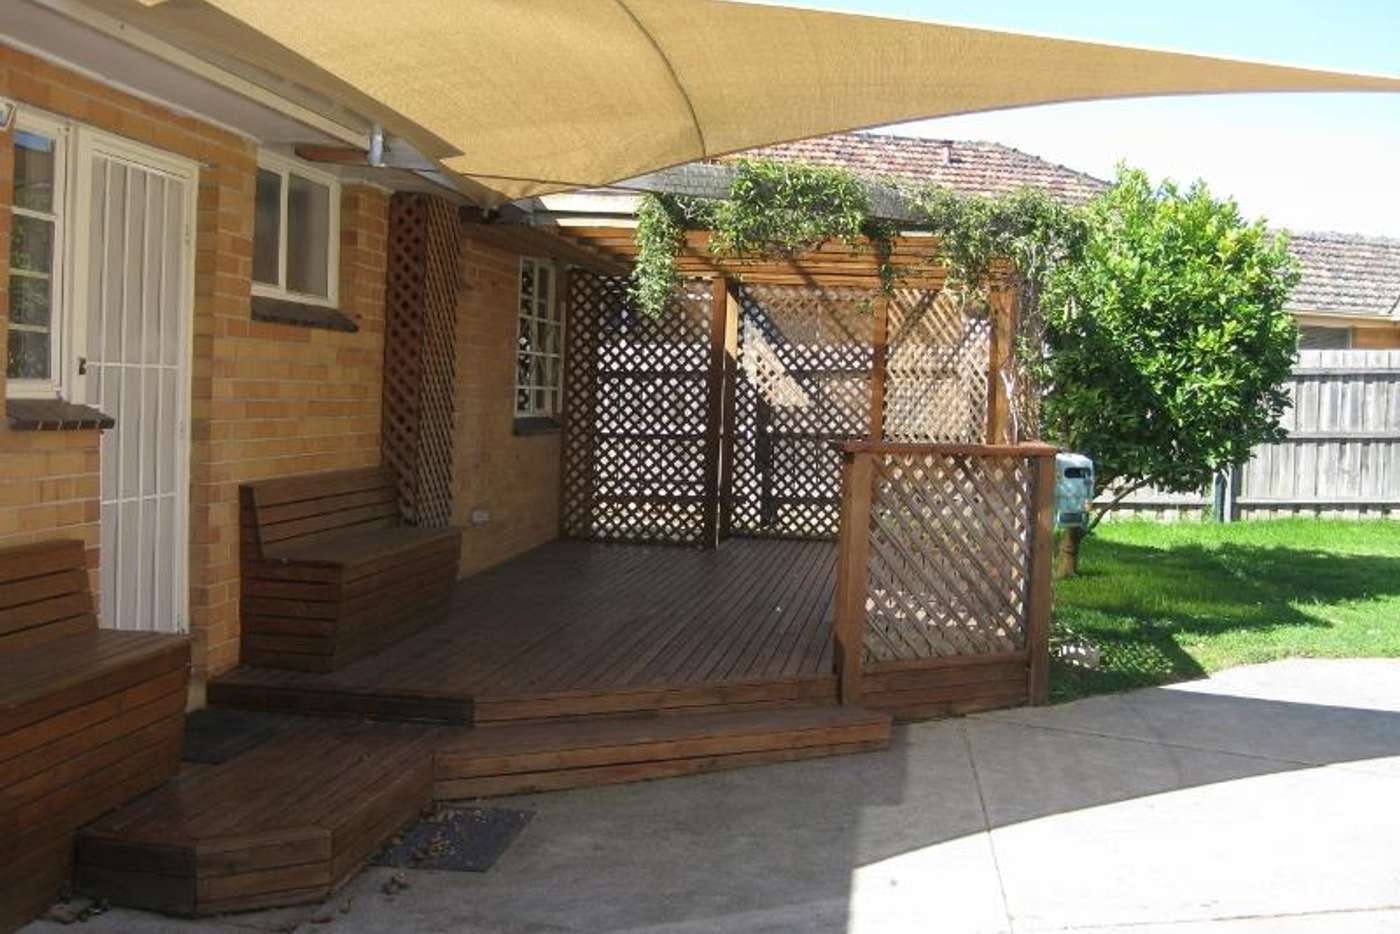 Sixth view of Homely house listing, 4 Elwers Street, Watsonia North VIC 3087